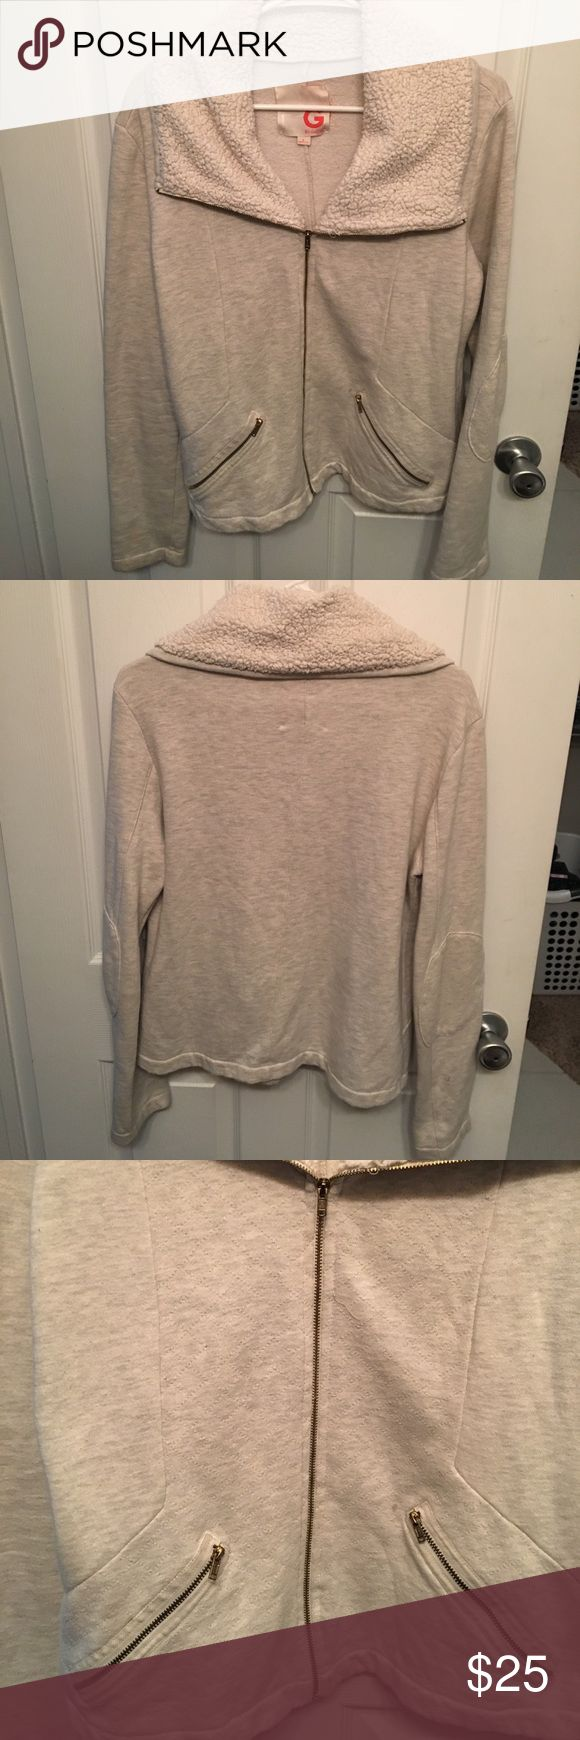 G by Guess beige zip up sweater Perfect for these chilly nights! G by Guess Jackets & Coats